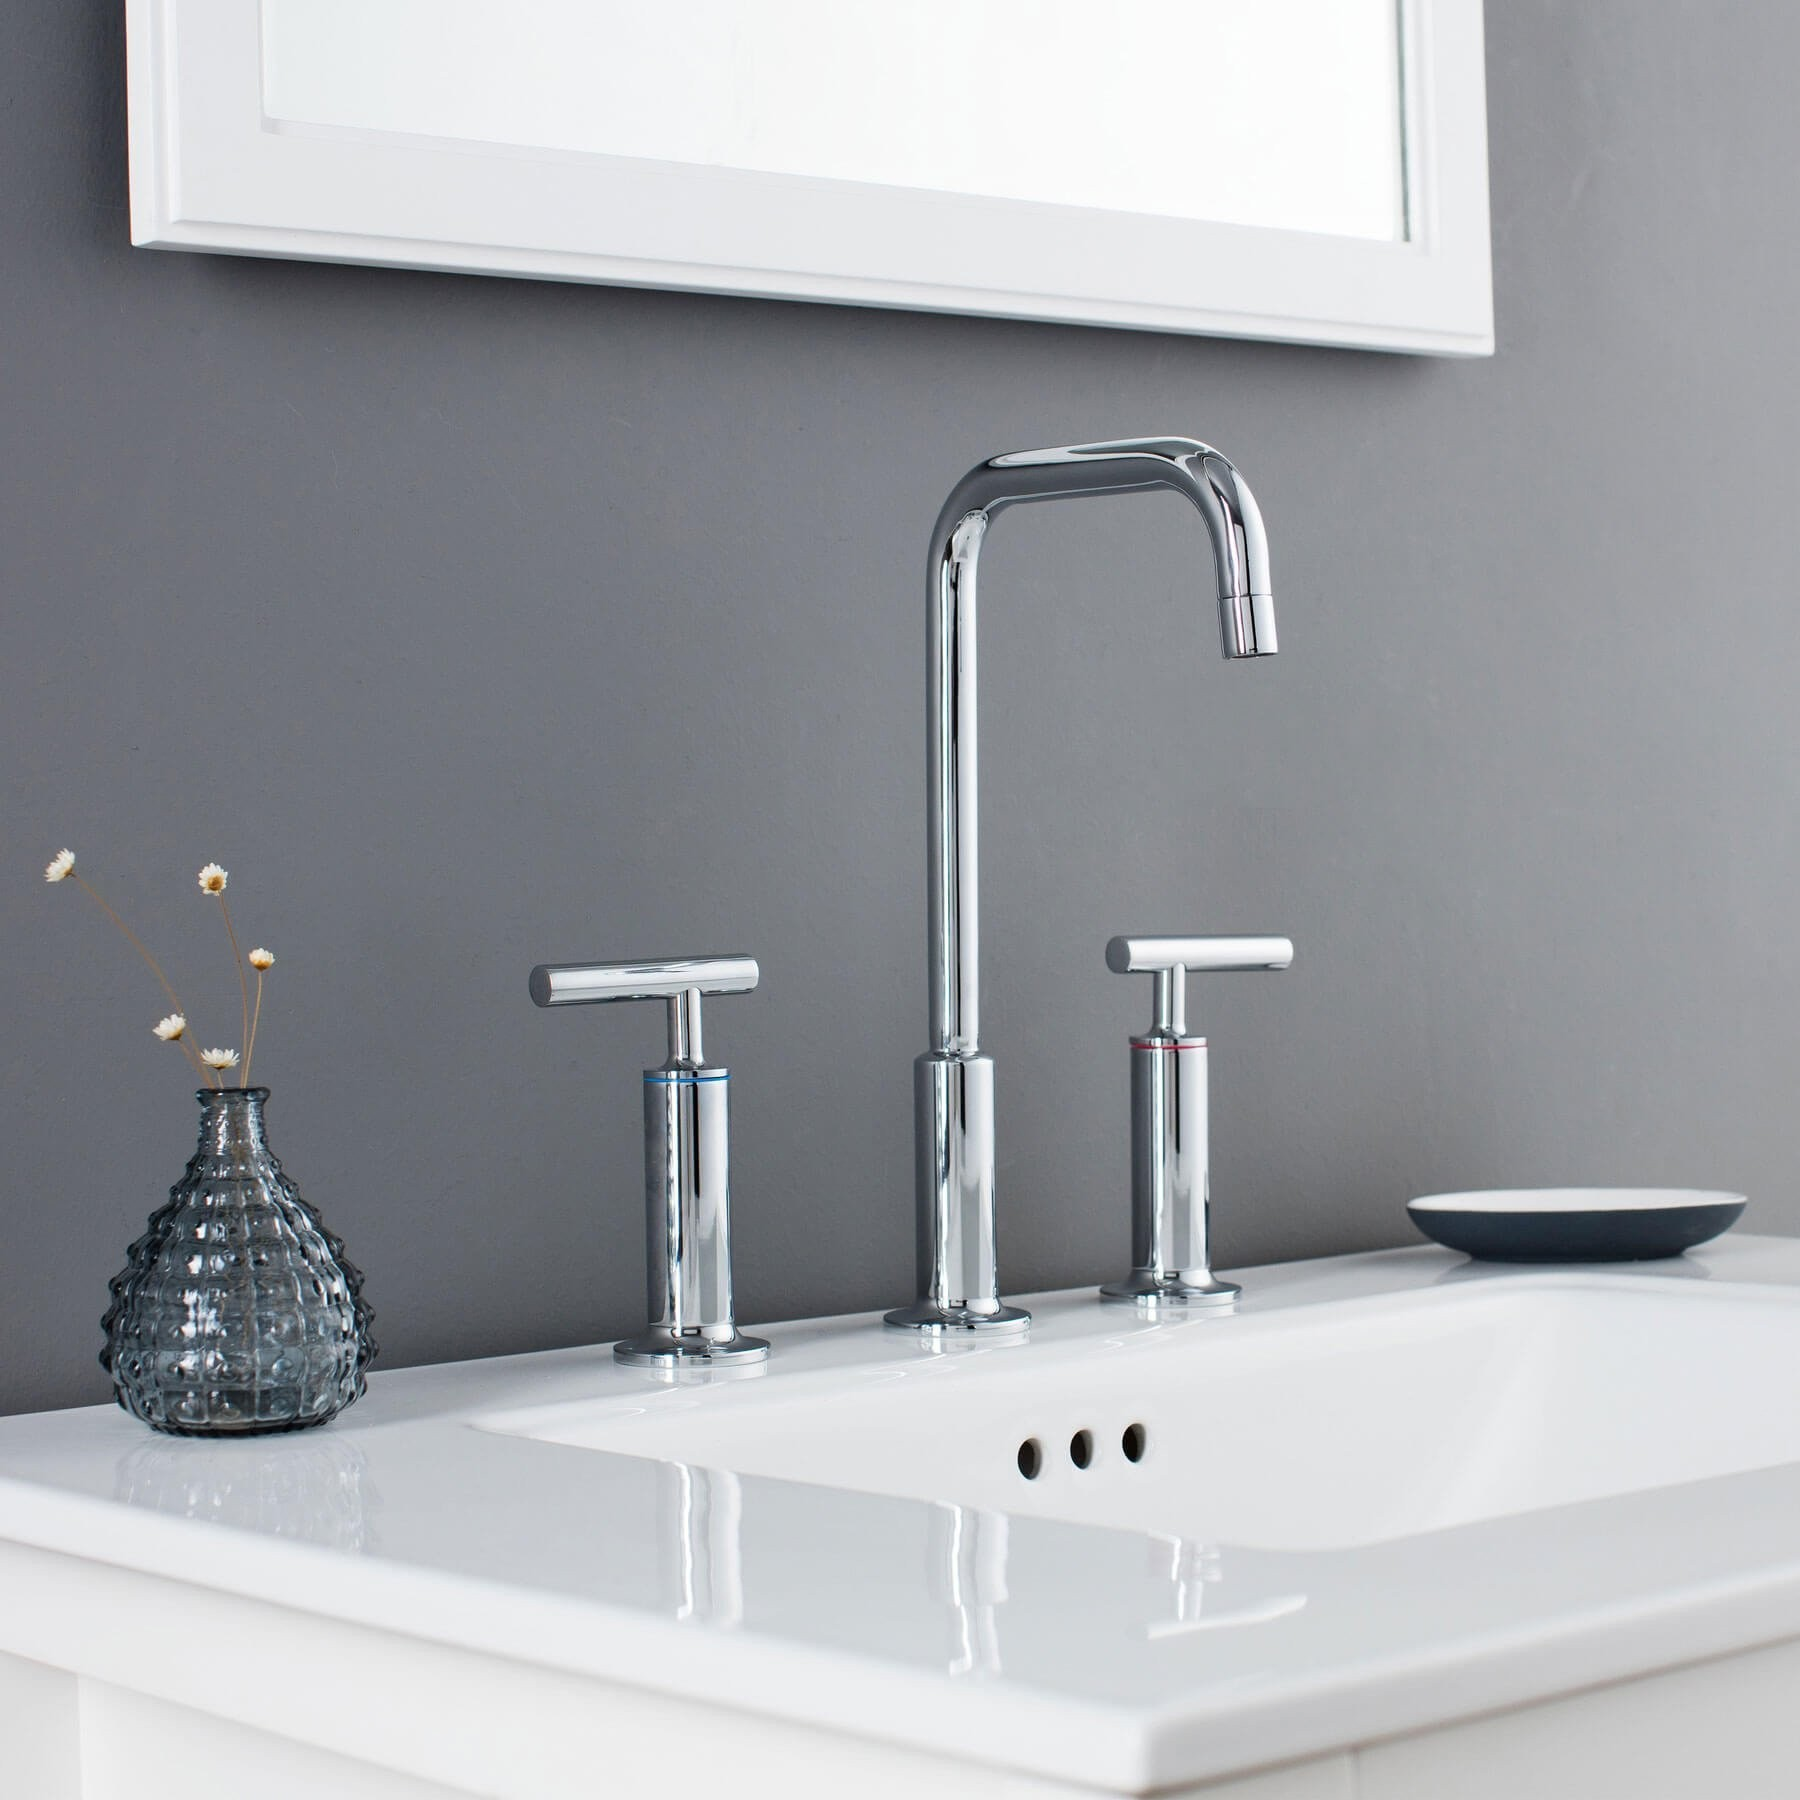 Prelude Brass Bathroom Sink Faucet Inch Widespread Hole - Bathroom sink faucets on sale